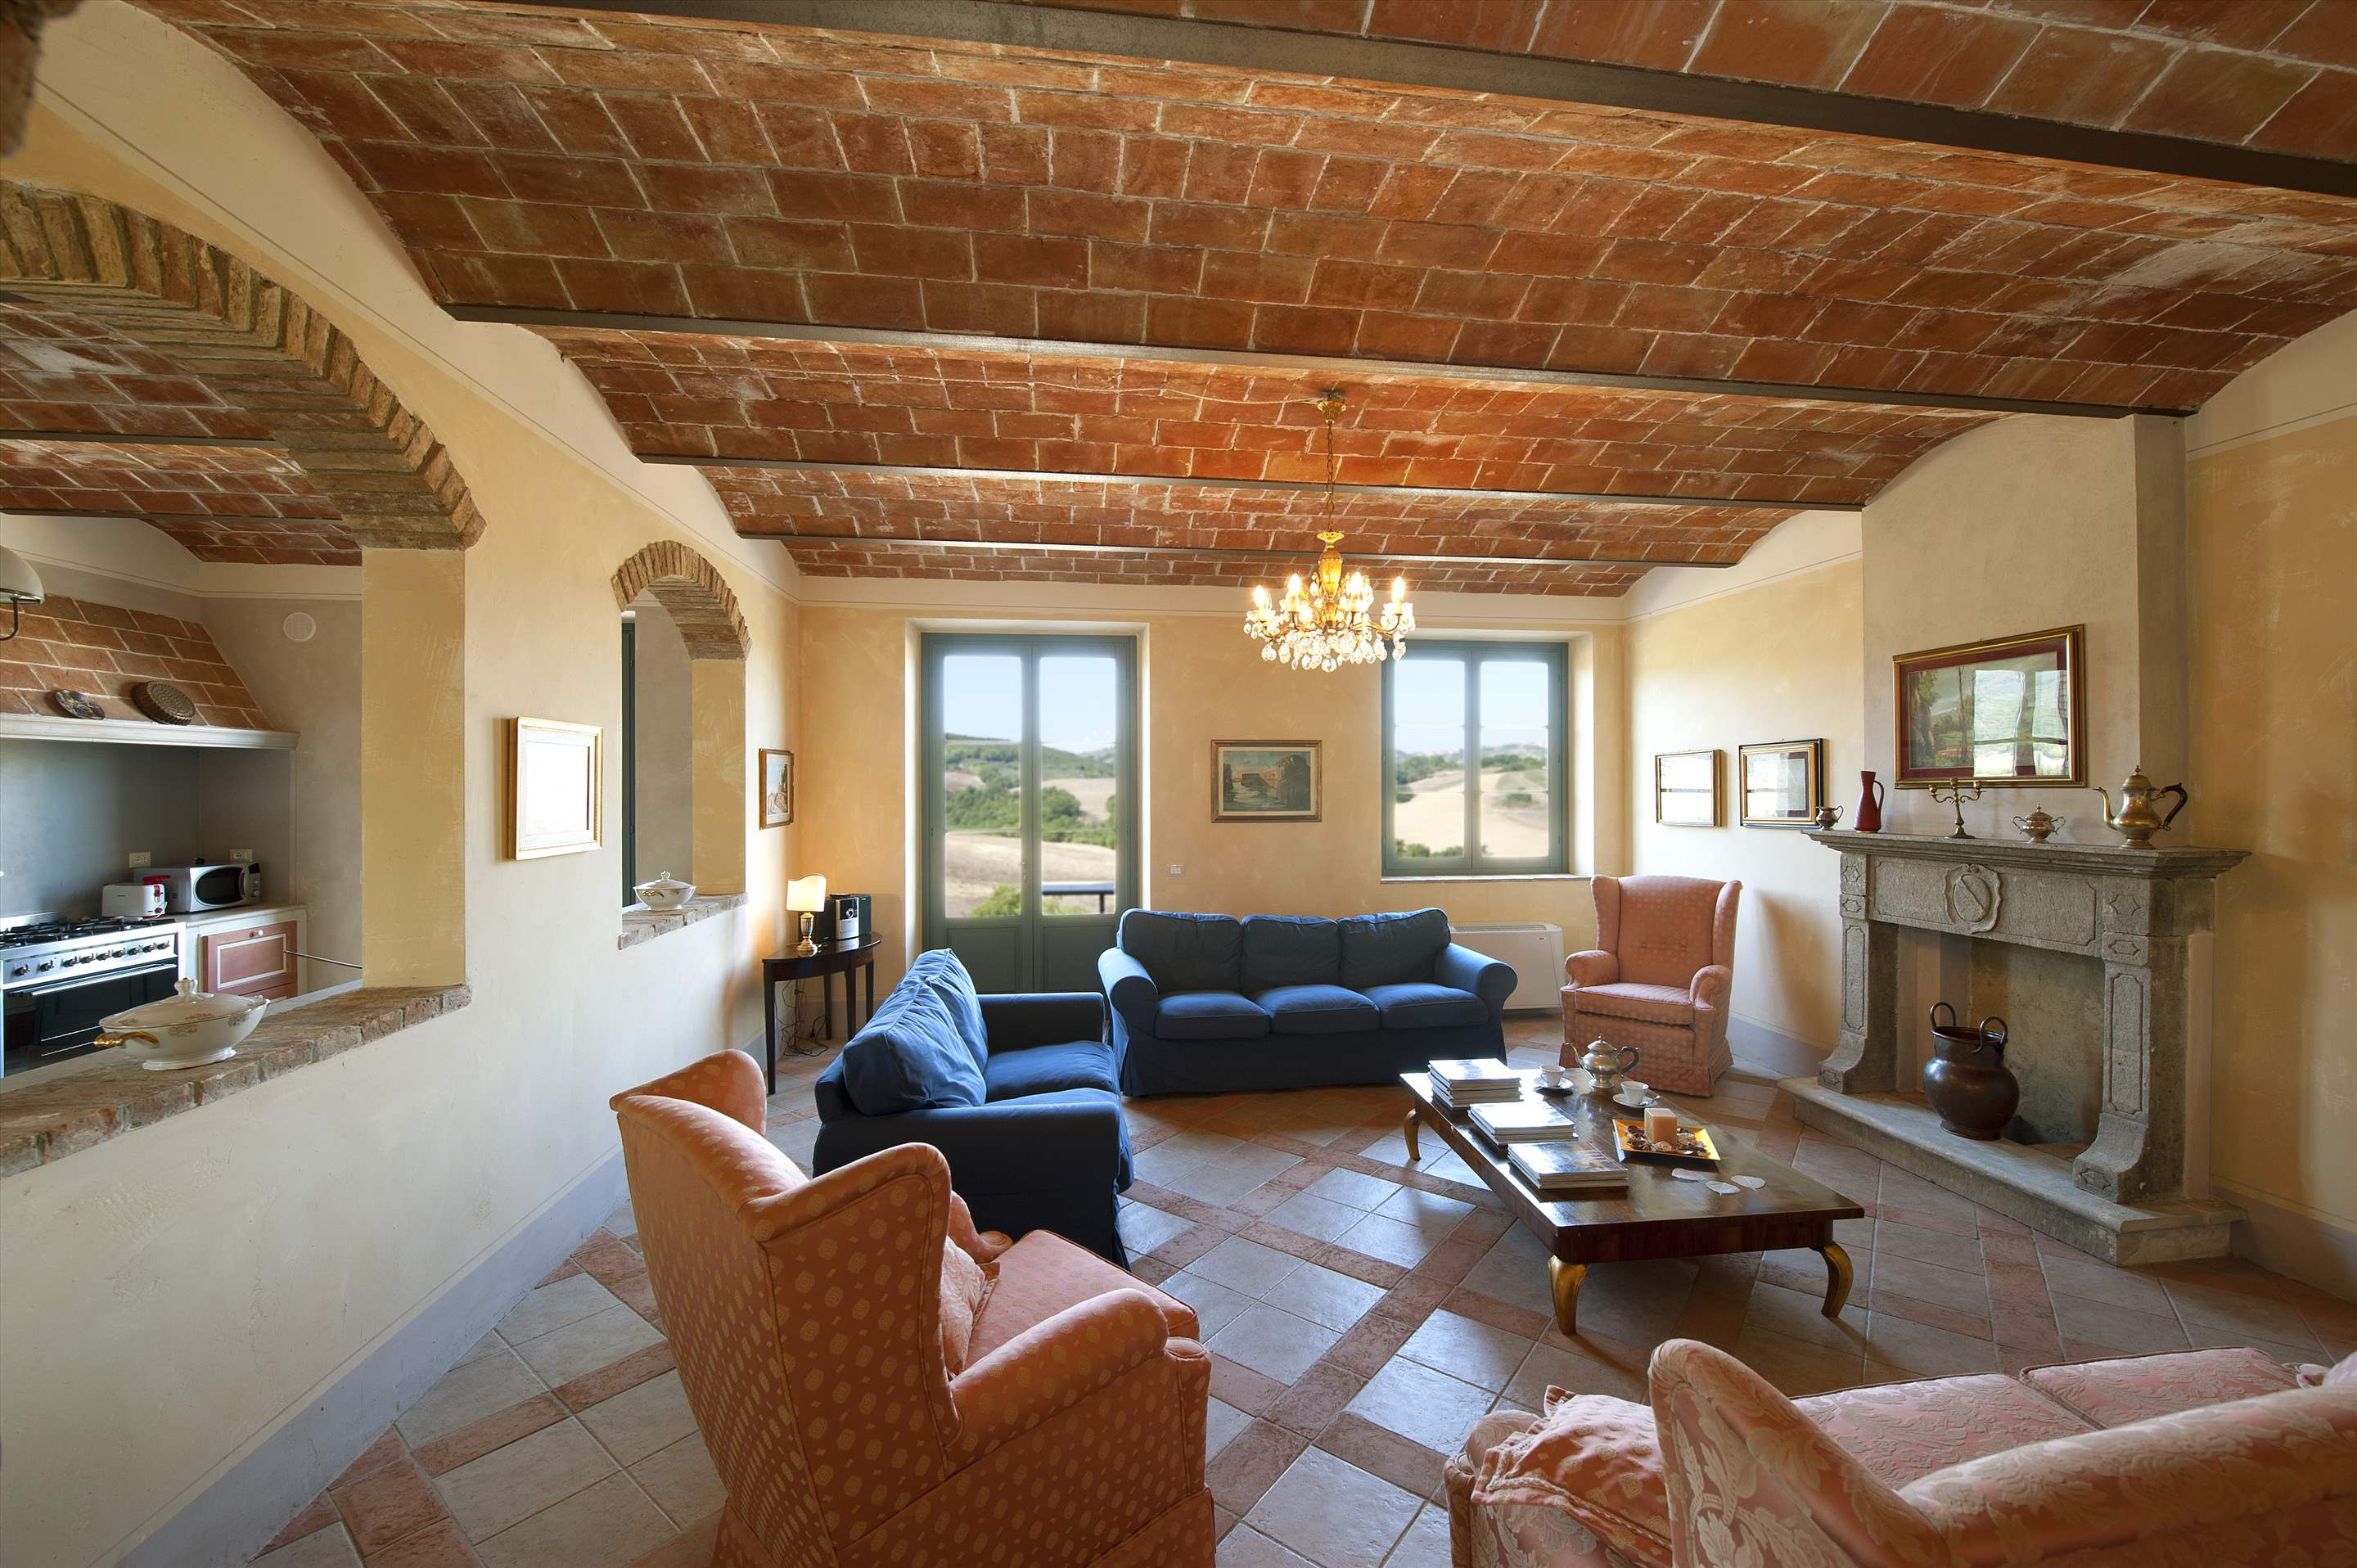 Podere Casacce, Ground Floor, 4 bedroom villa in Tuscany Coast, Tuscany Photo #6